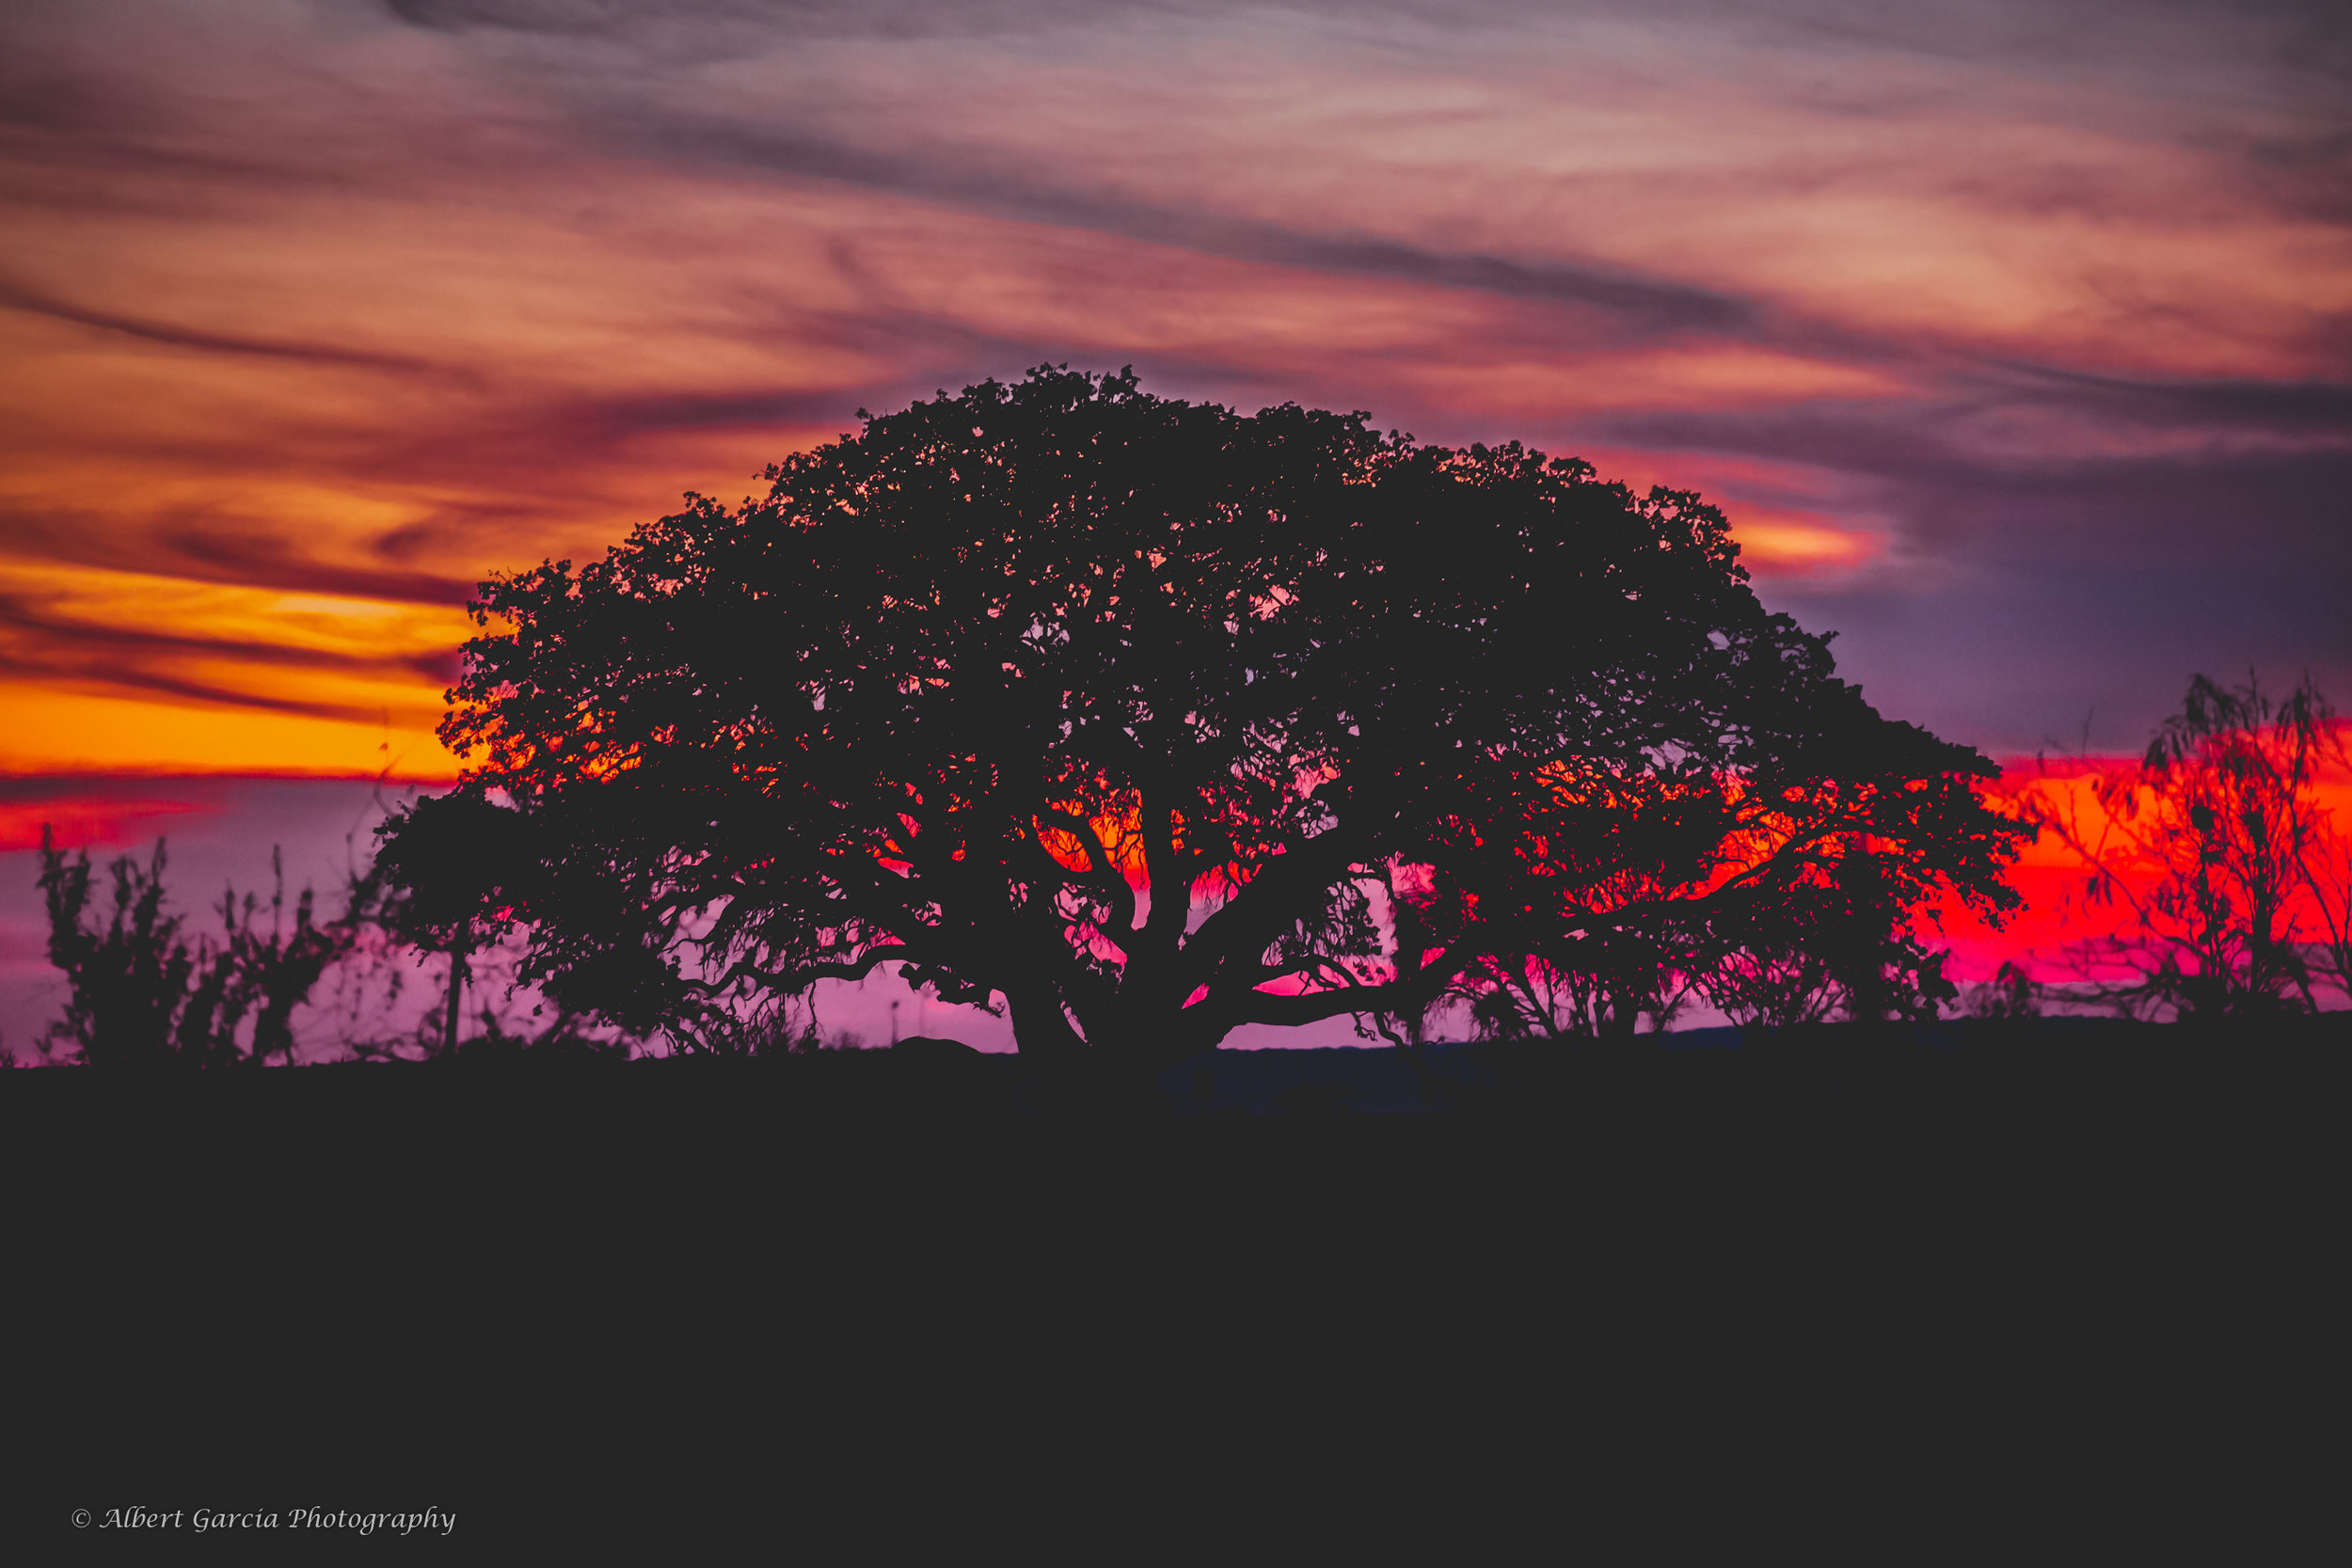 colorful sunset no WM 3 watermark - 150.jpg